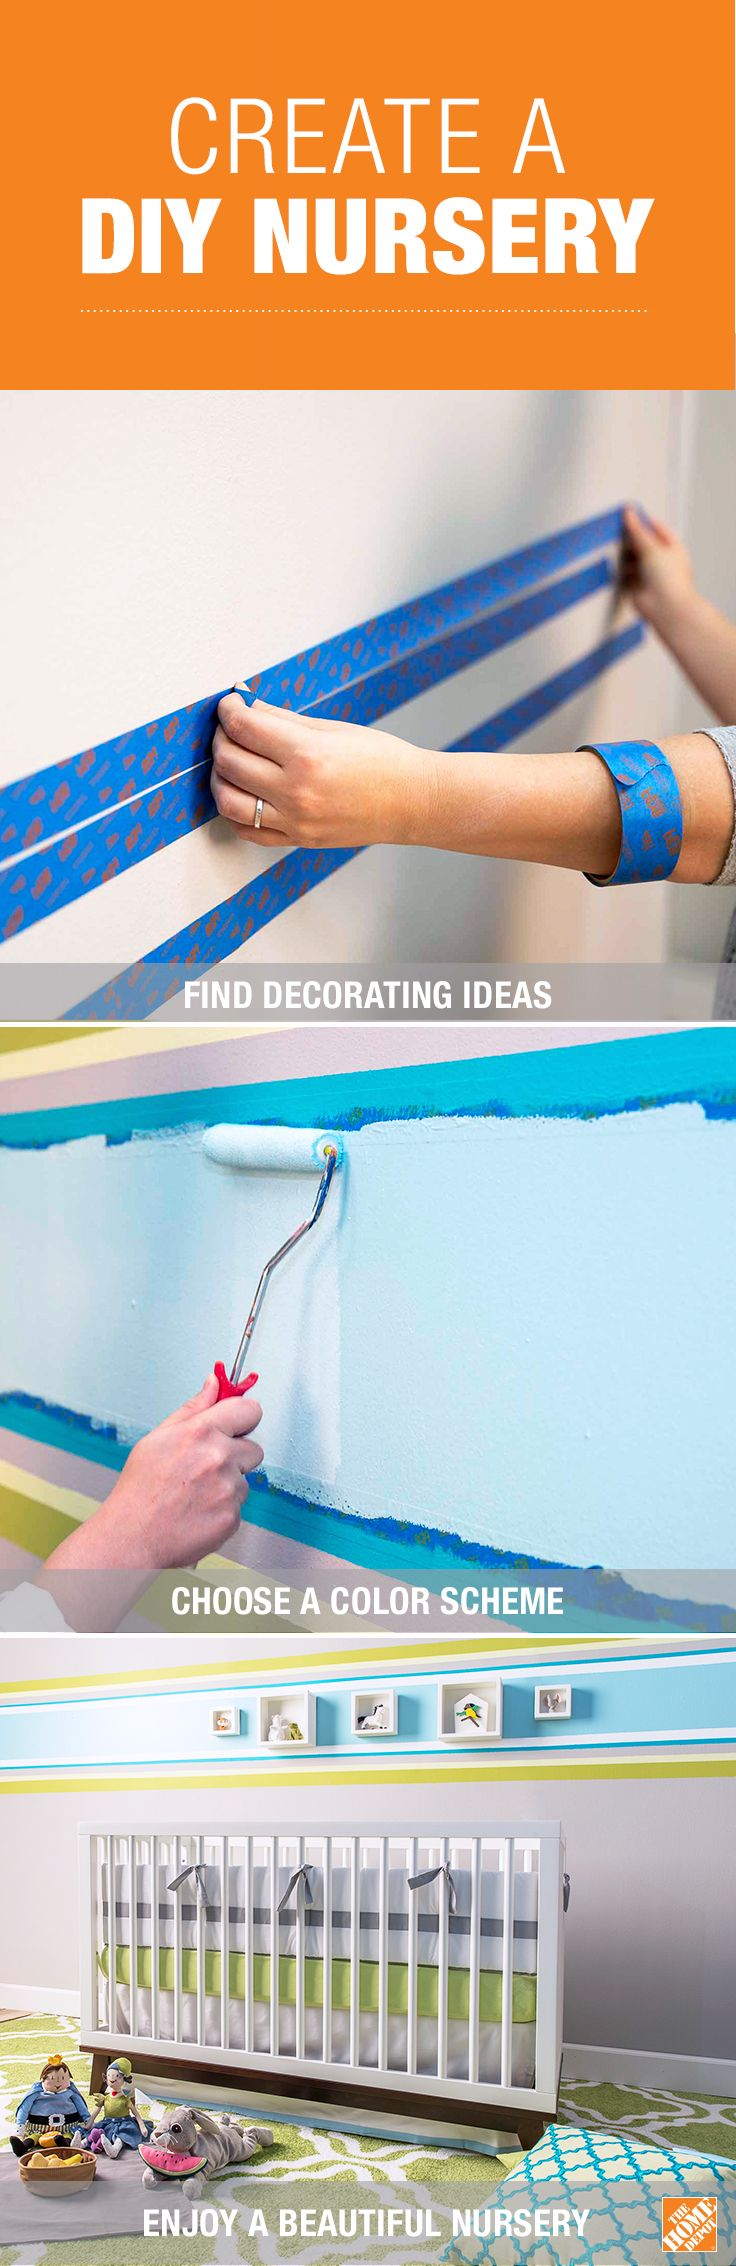 Learn how to create a beautiful nursery with recommended color schemes and designs by BEHR paint. Get the simple step-by-step guide as well as decorating tips that will help add the perfect touch to your baby's nursery.